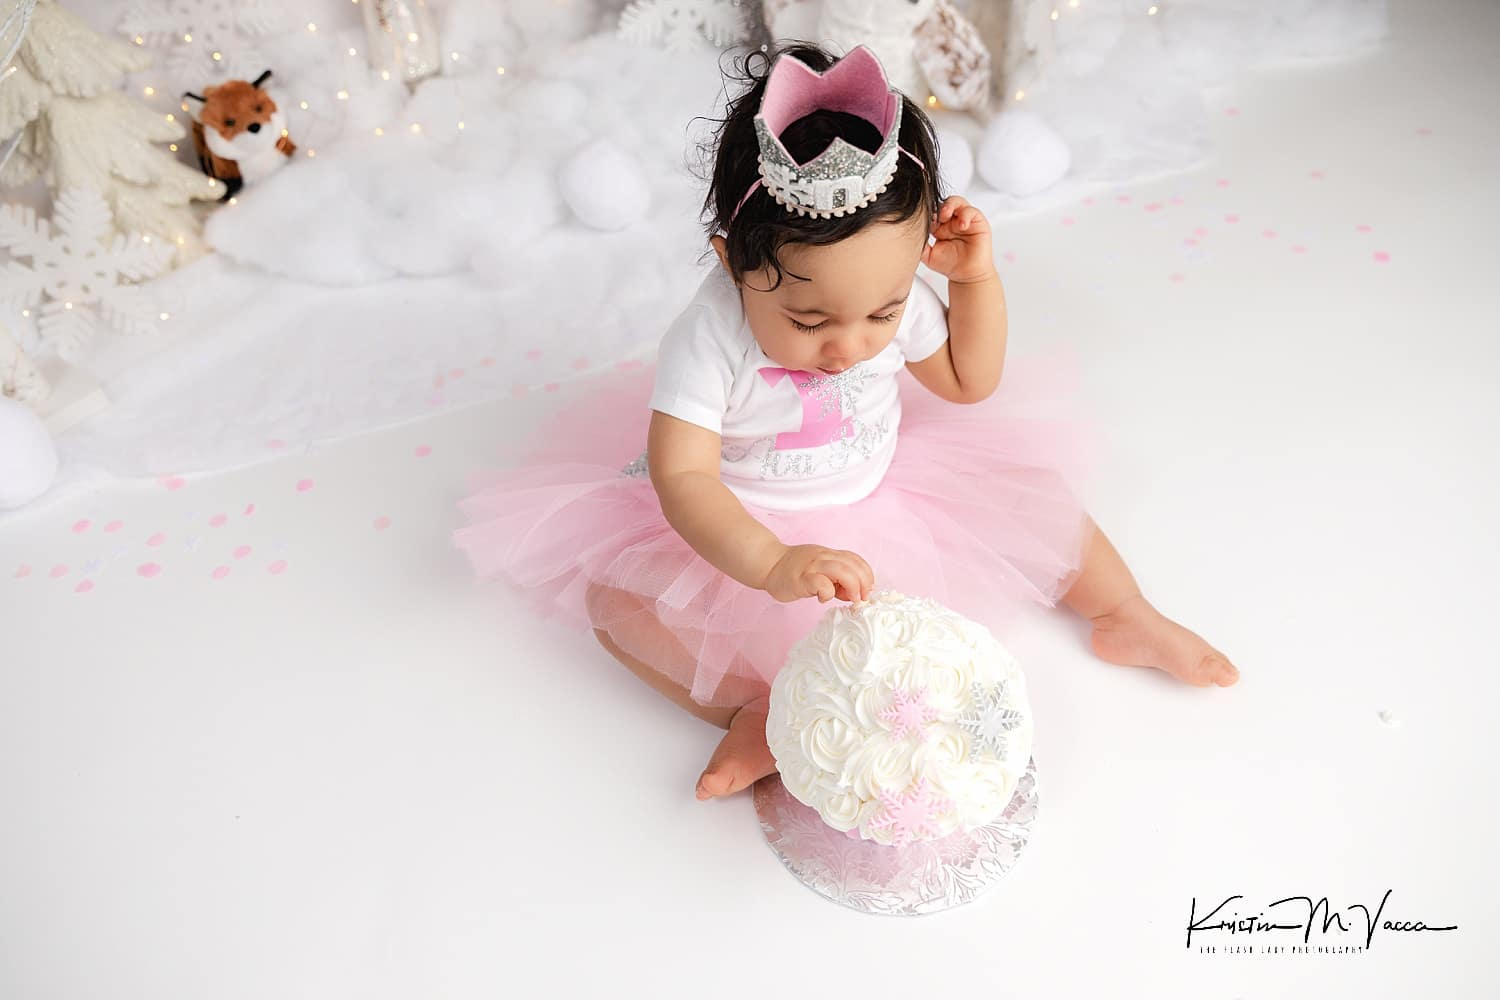 Photos from Ava's winter onederland cake smash photoshoot by West Hartford, CT photographer The Flash Lady Photography